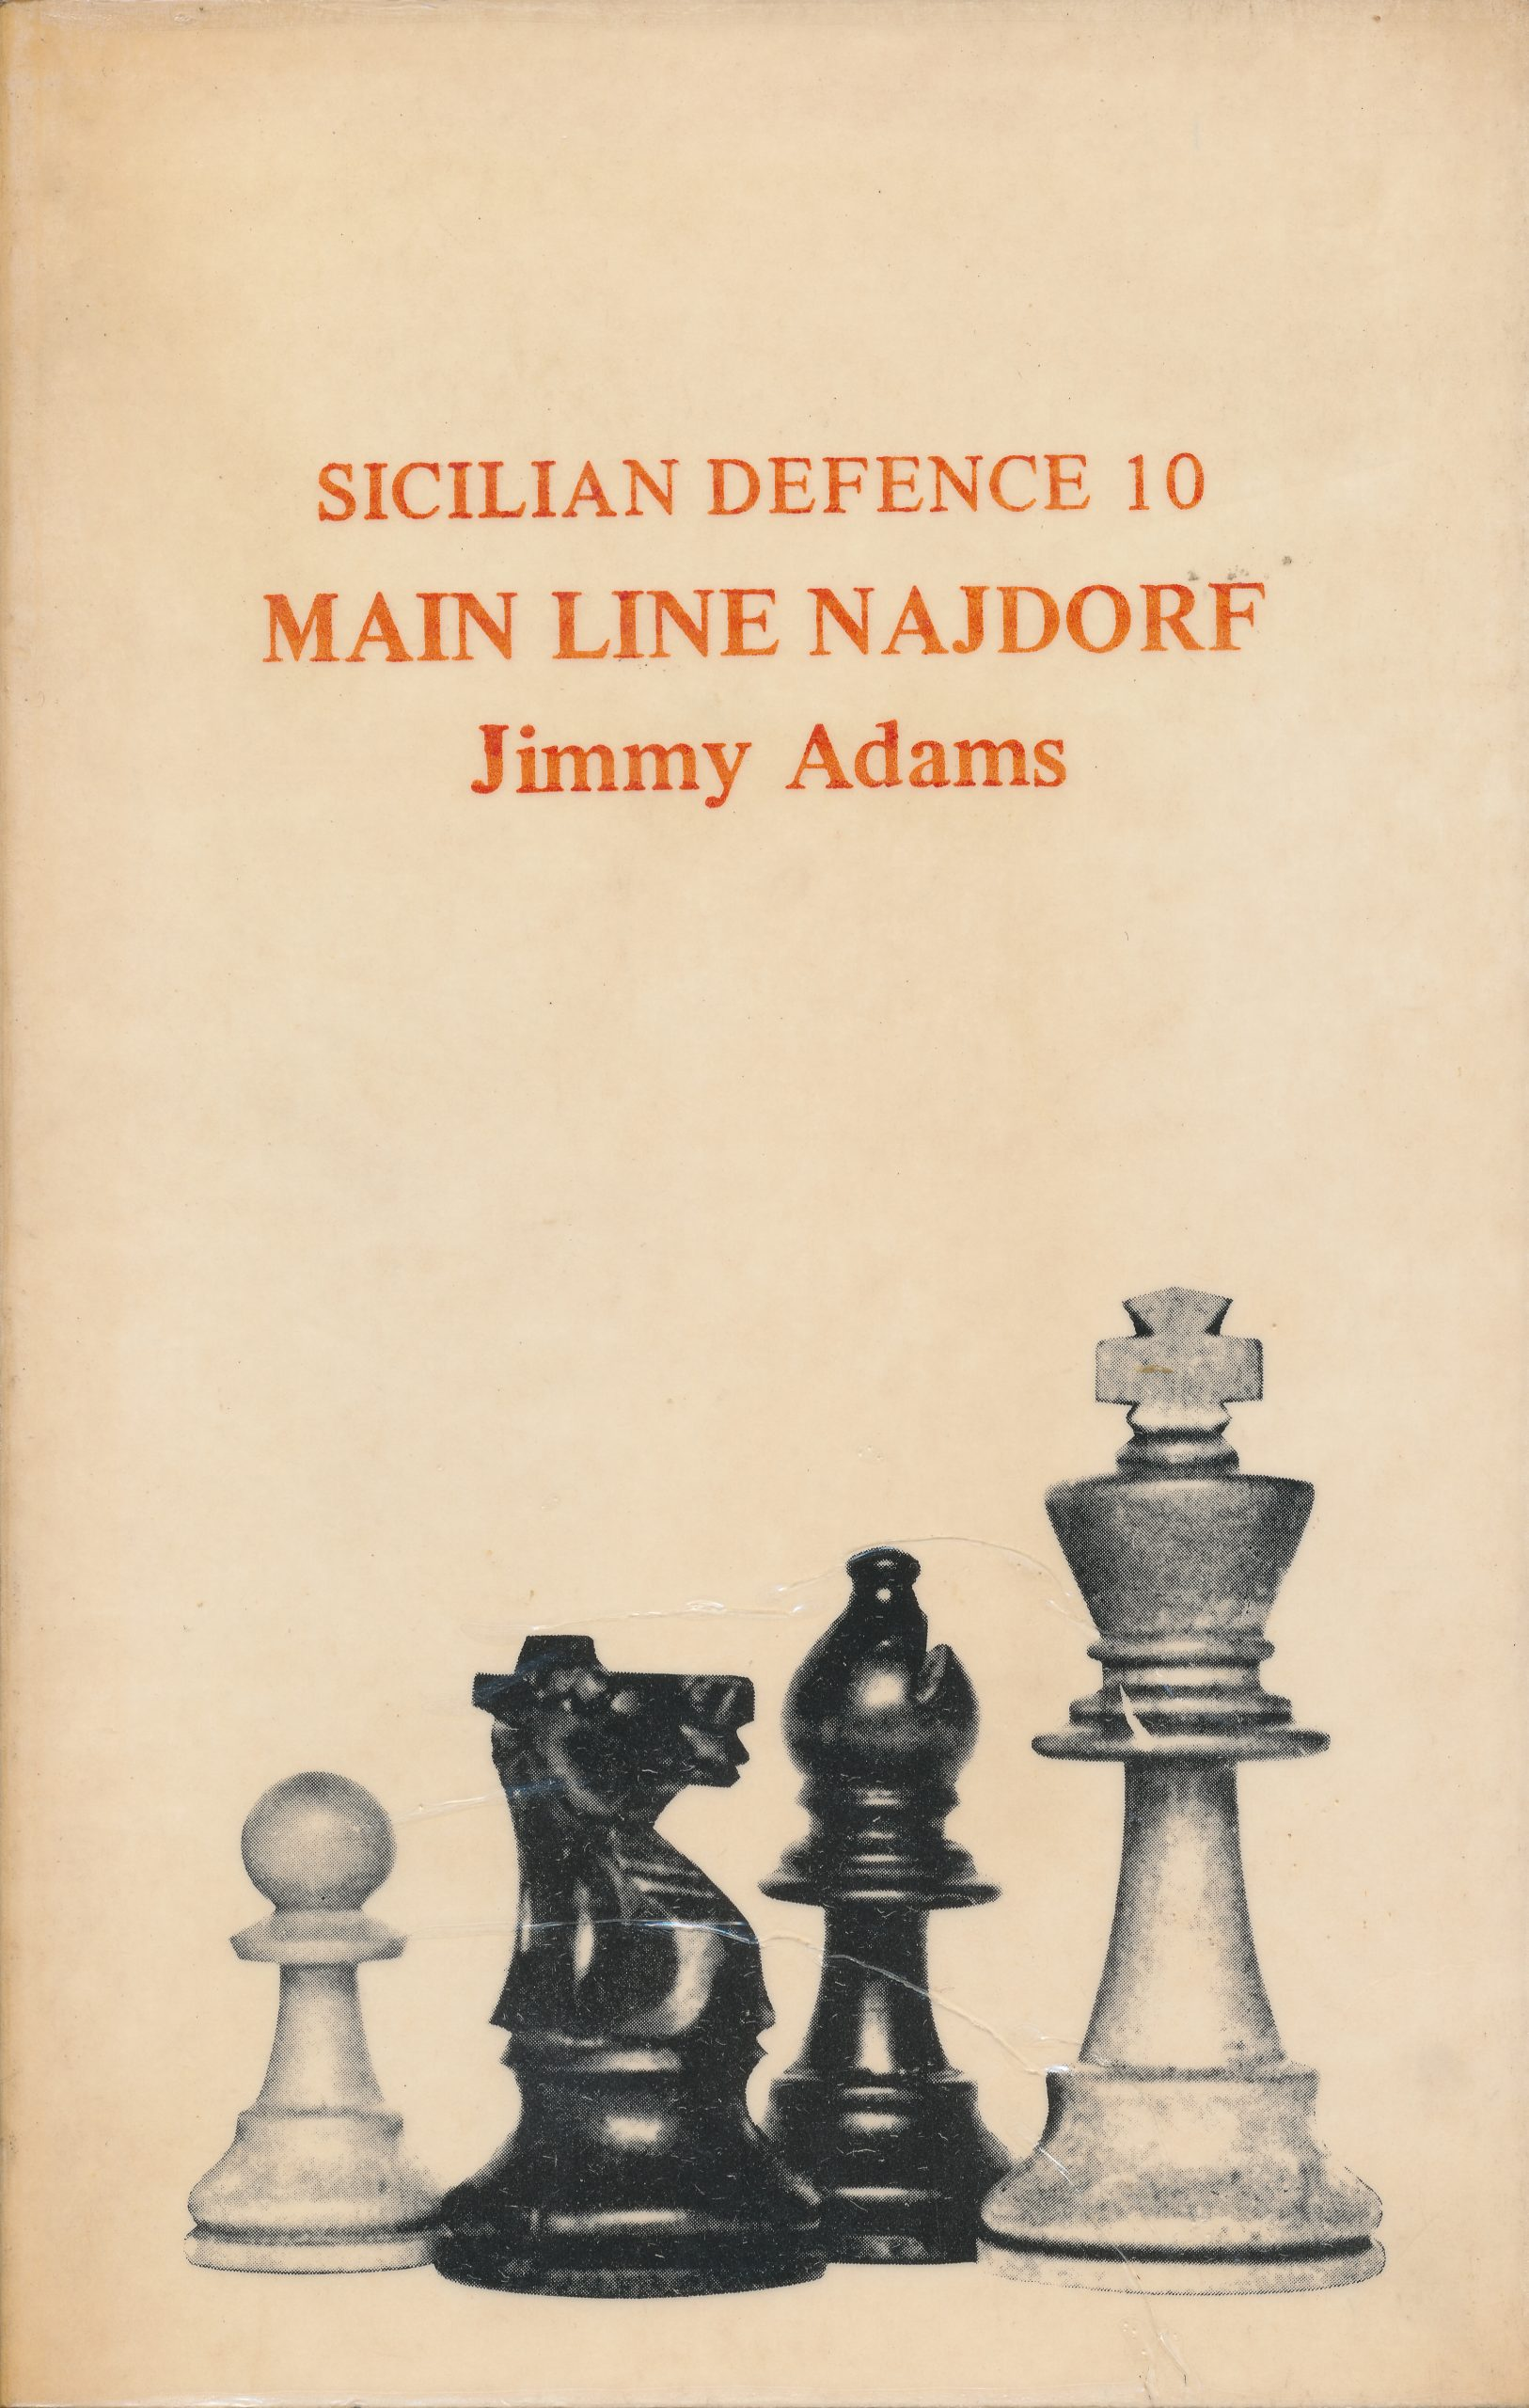 Sicilian Defence 10 : Main Line Najdorf, Jimmy Adams, The Chess Player, 1977